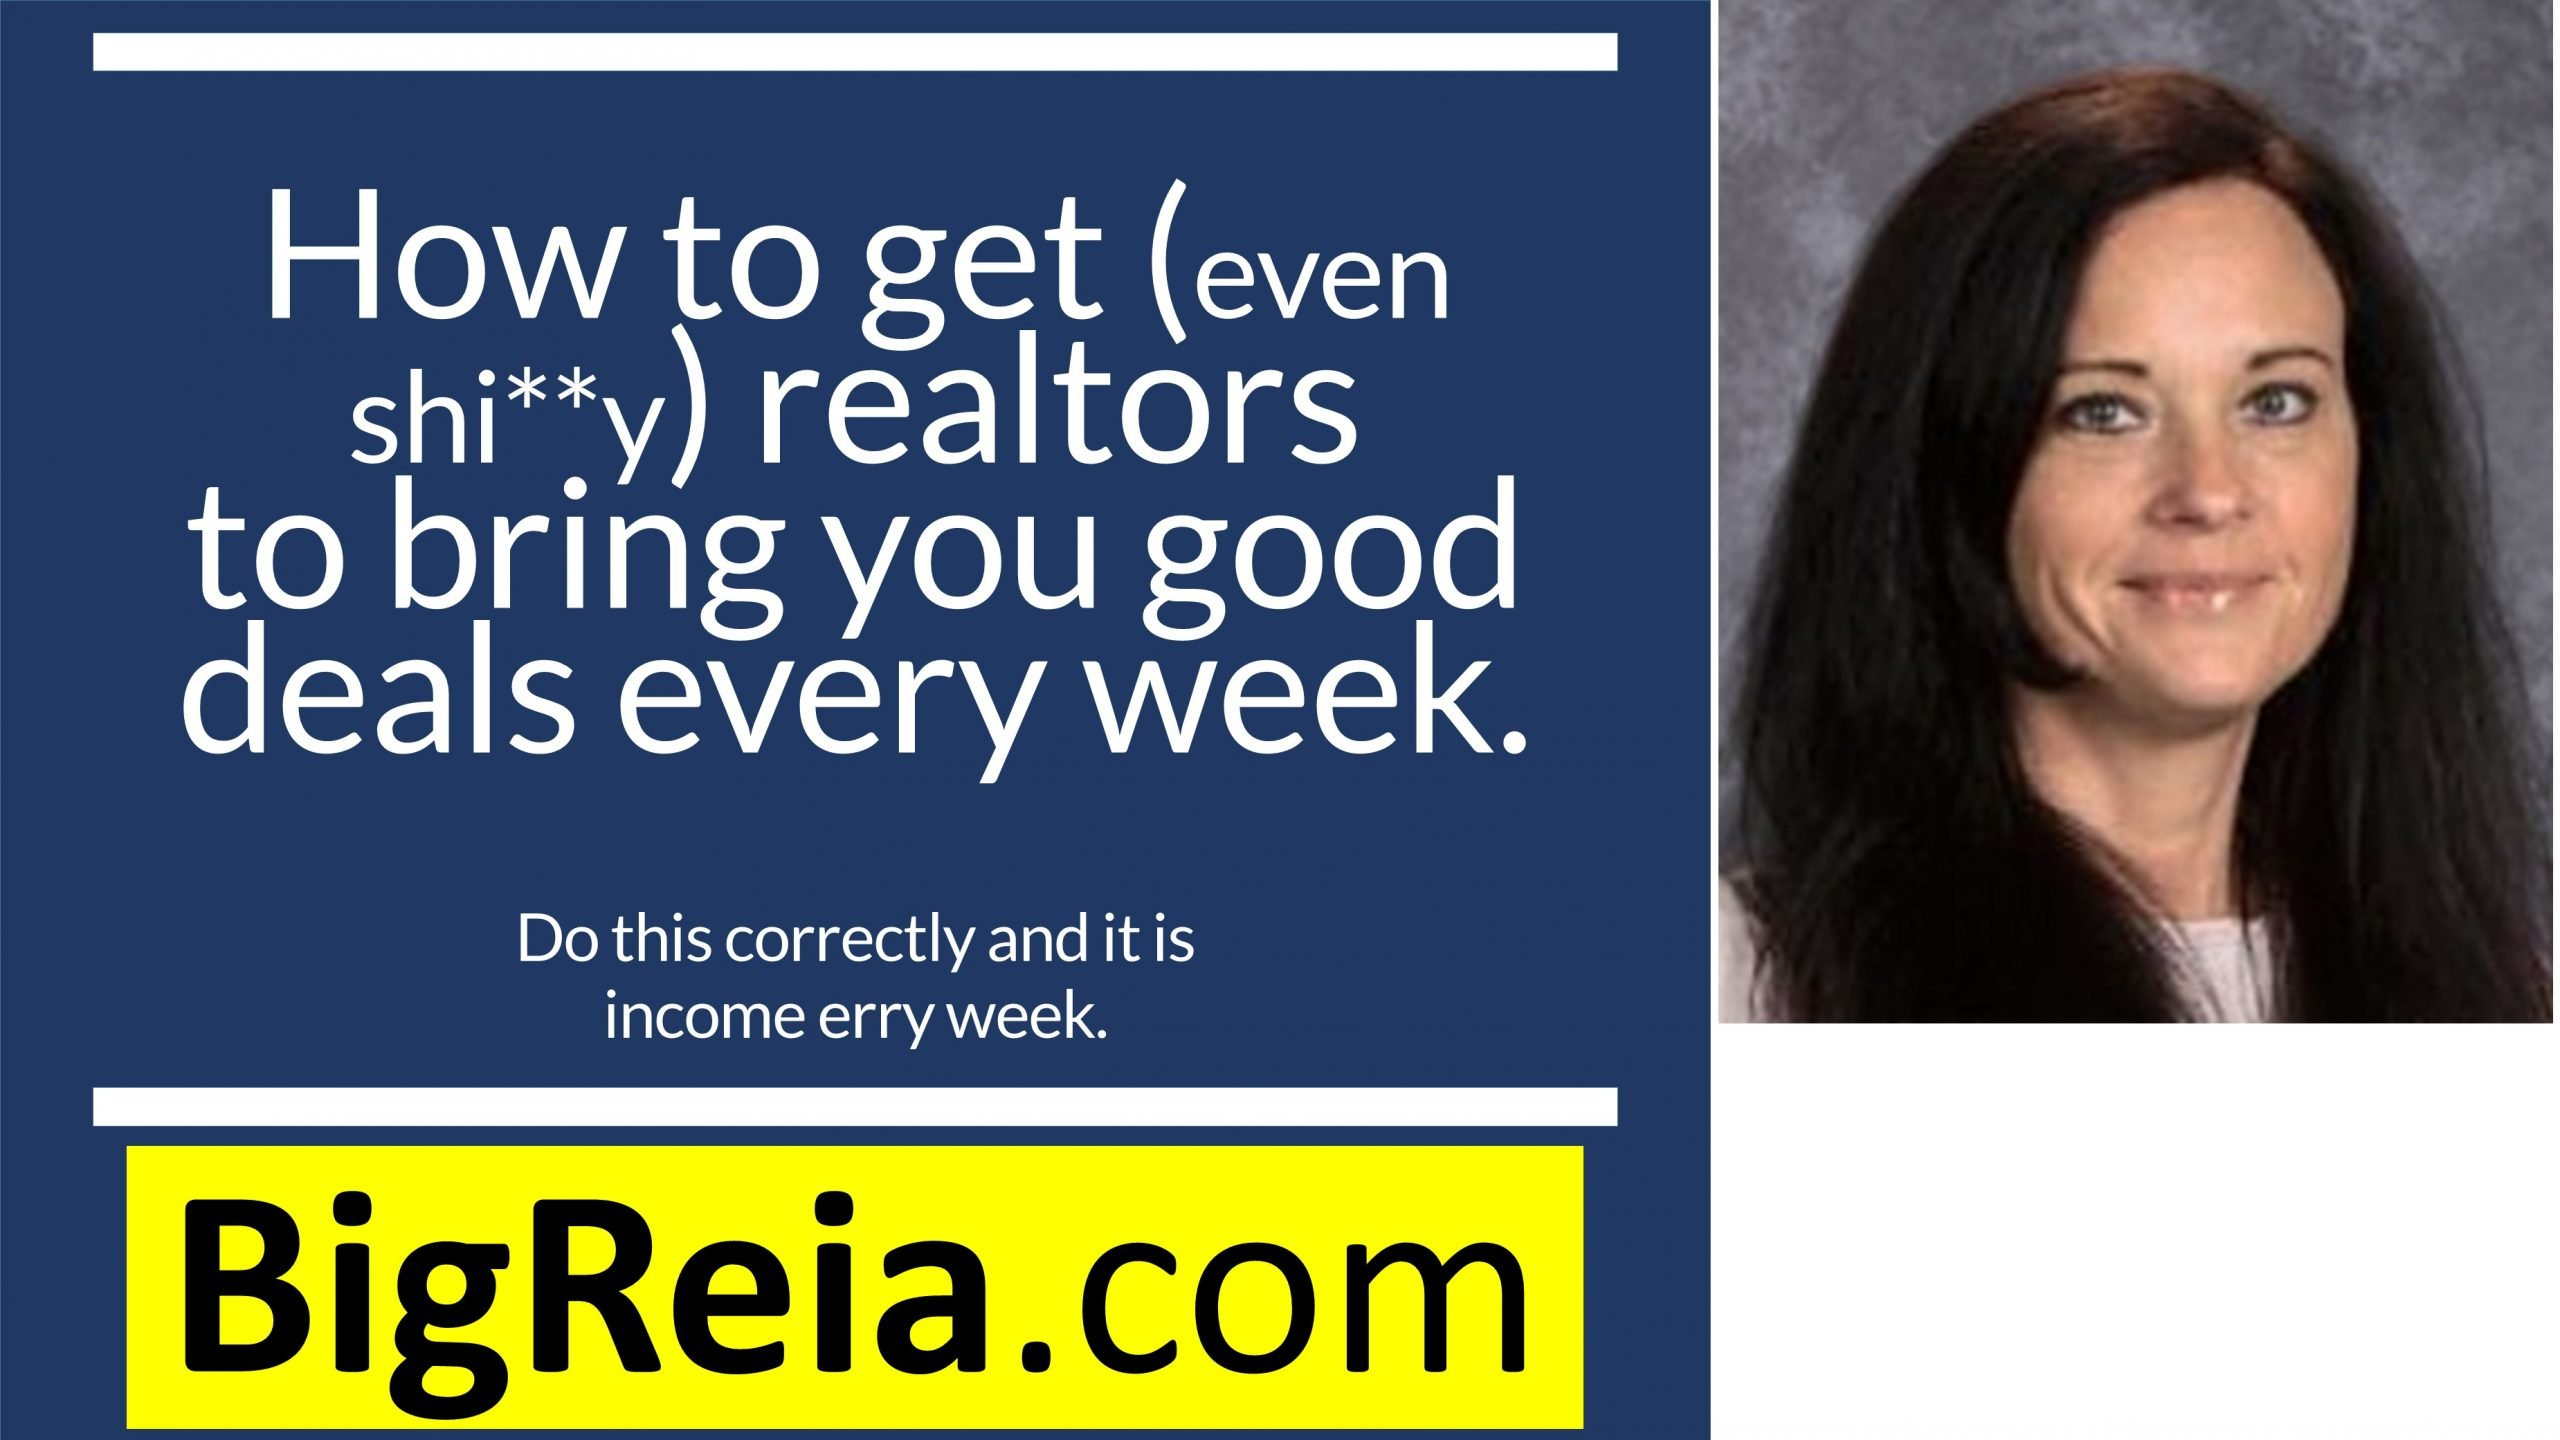 Real estate investors: how to get (even shi**ty) realtors to bring you a GOOD deal every week.